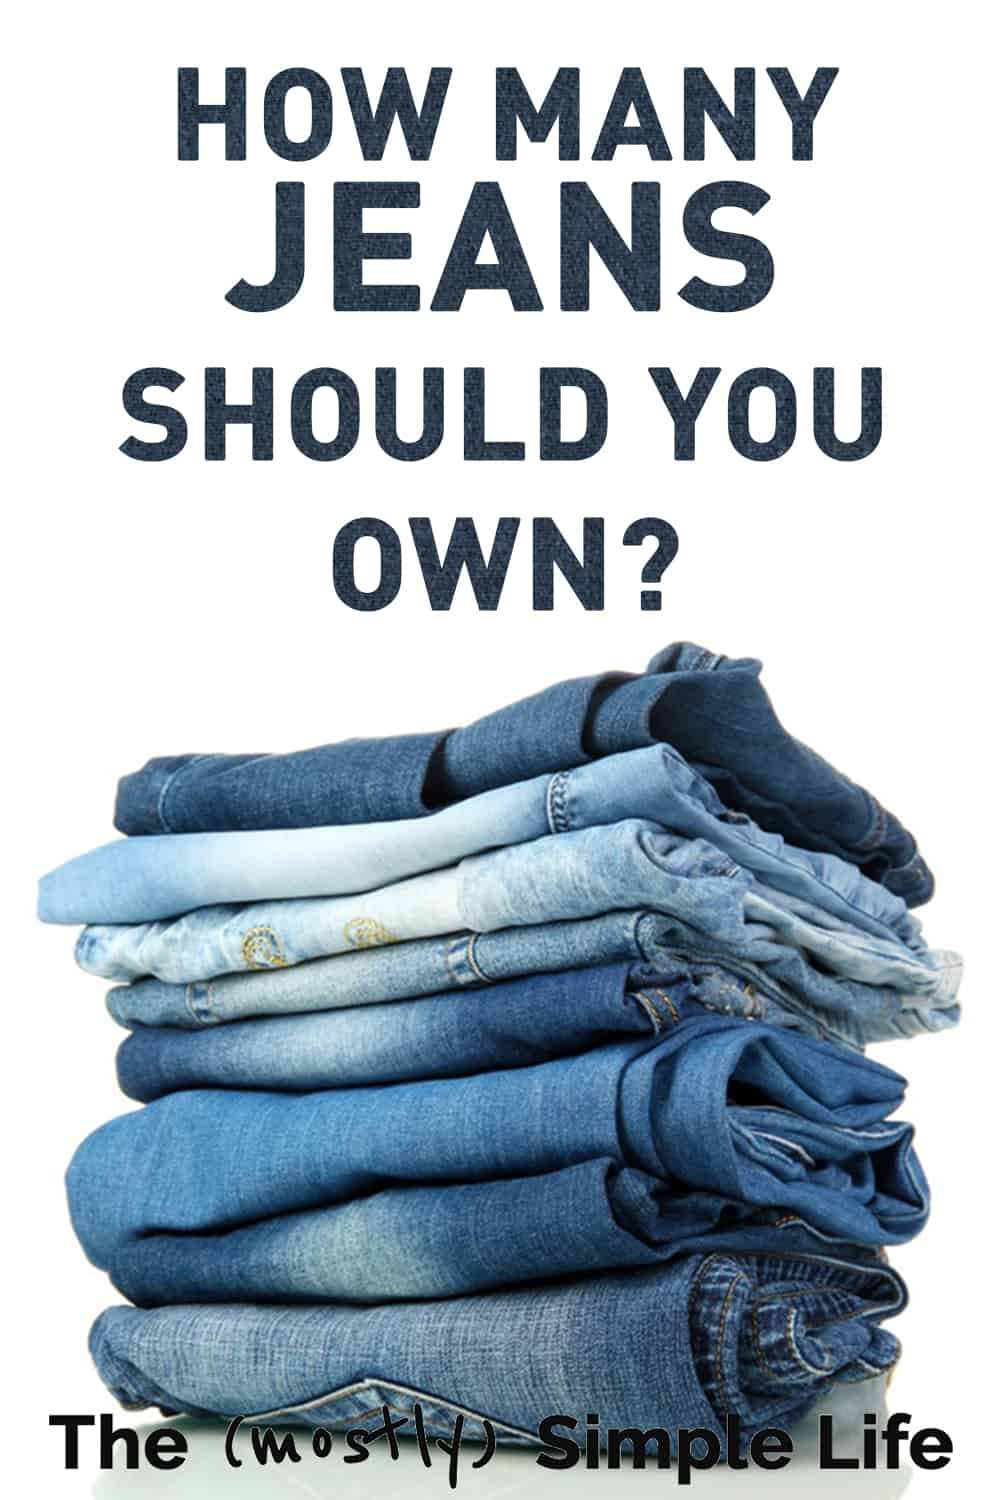 How Many Jeans Should I Own?